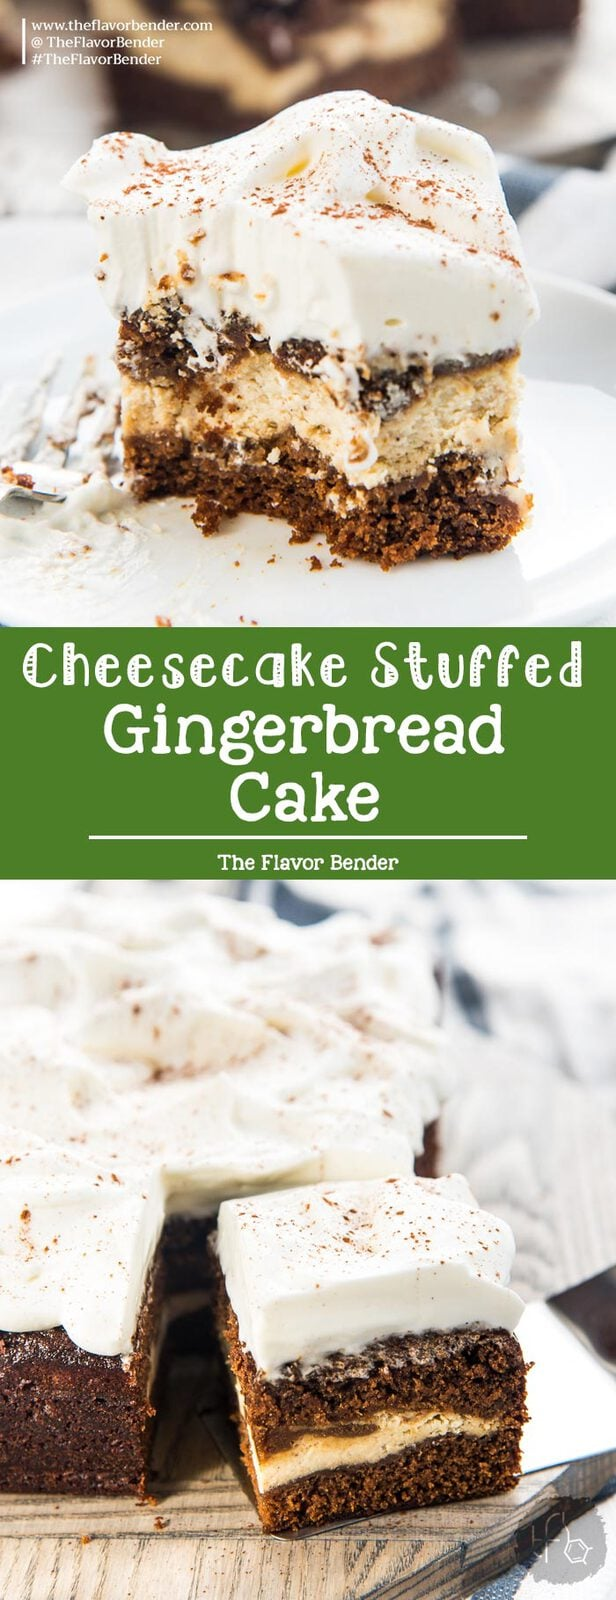 Cheesecake Stuffed Gingerbread Cheesecake - Sweet, and spicy gingerbread cake with a fudgy, creamy hidden cheesecake layer inside! A double dessert in one cake that's perfect for the holidays. #HolidayCakes #Gingerbread #SecretLayerCakes #ChristmasCakes